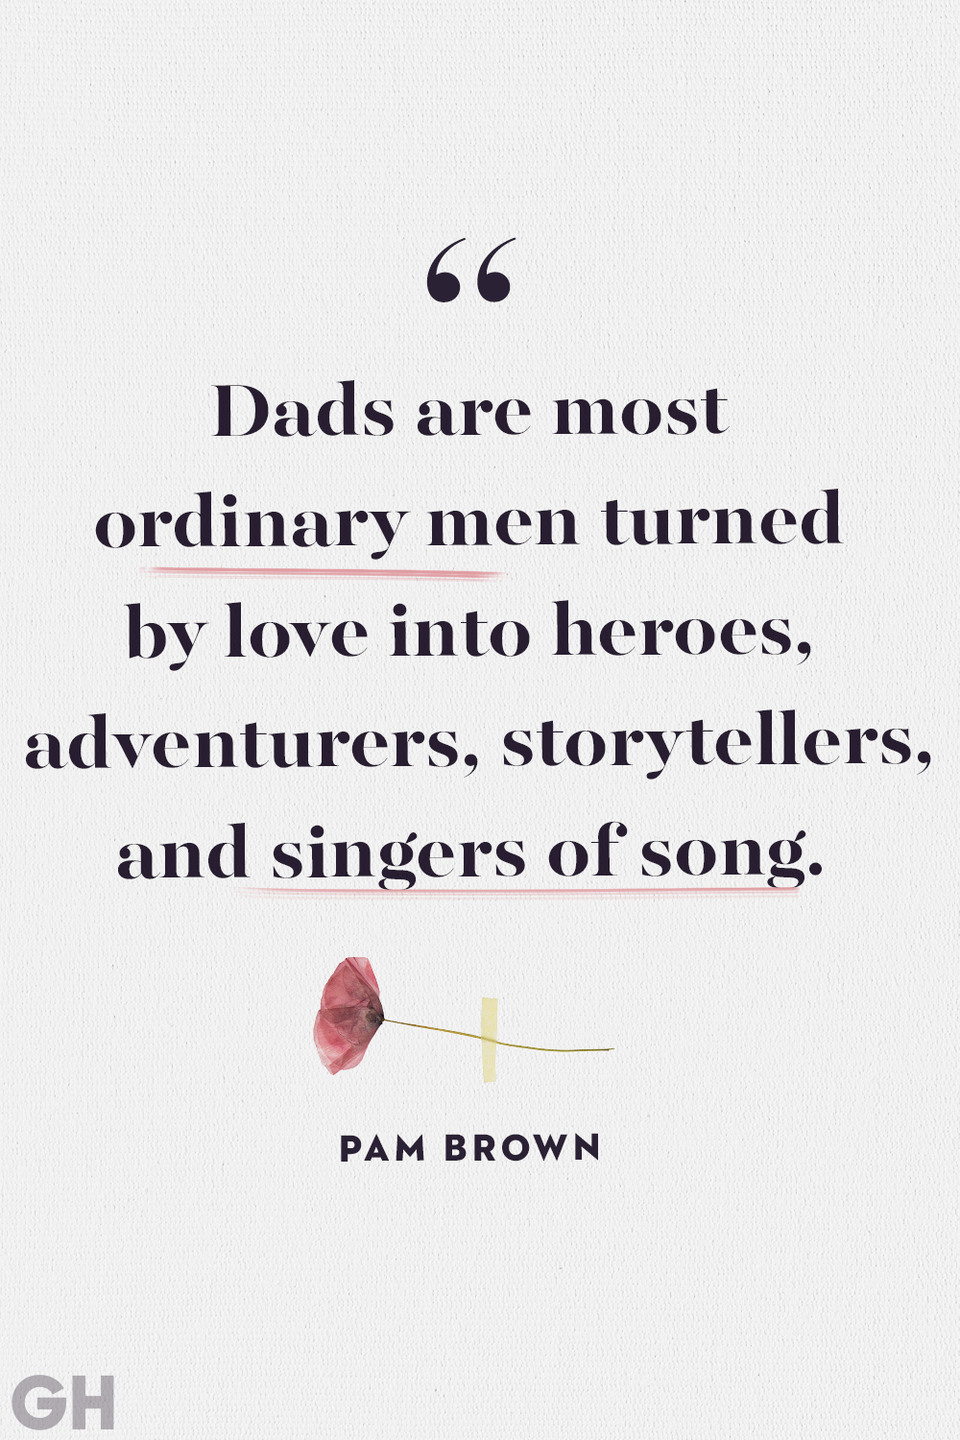 """<p>""""Dads are most ordinary men turned by love into heroes, adventurers, storytellers, and singers of song.""""</p>"""